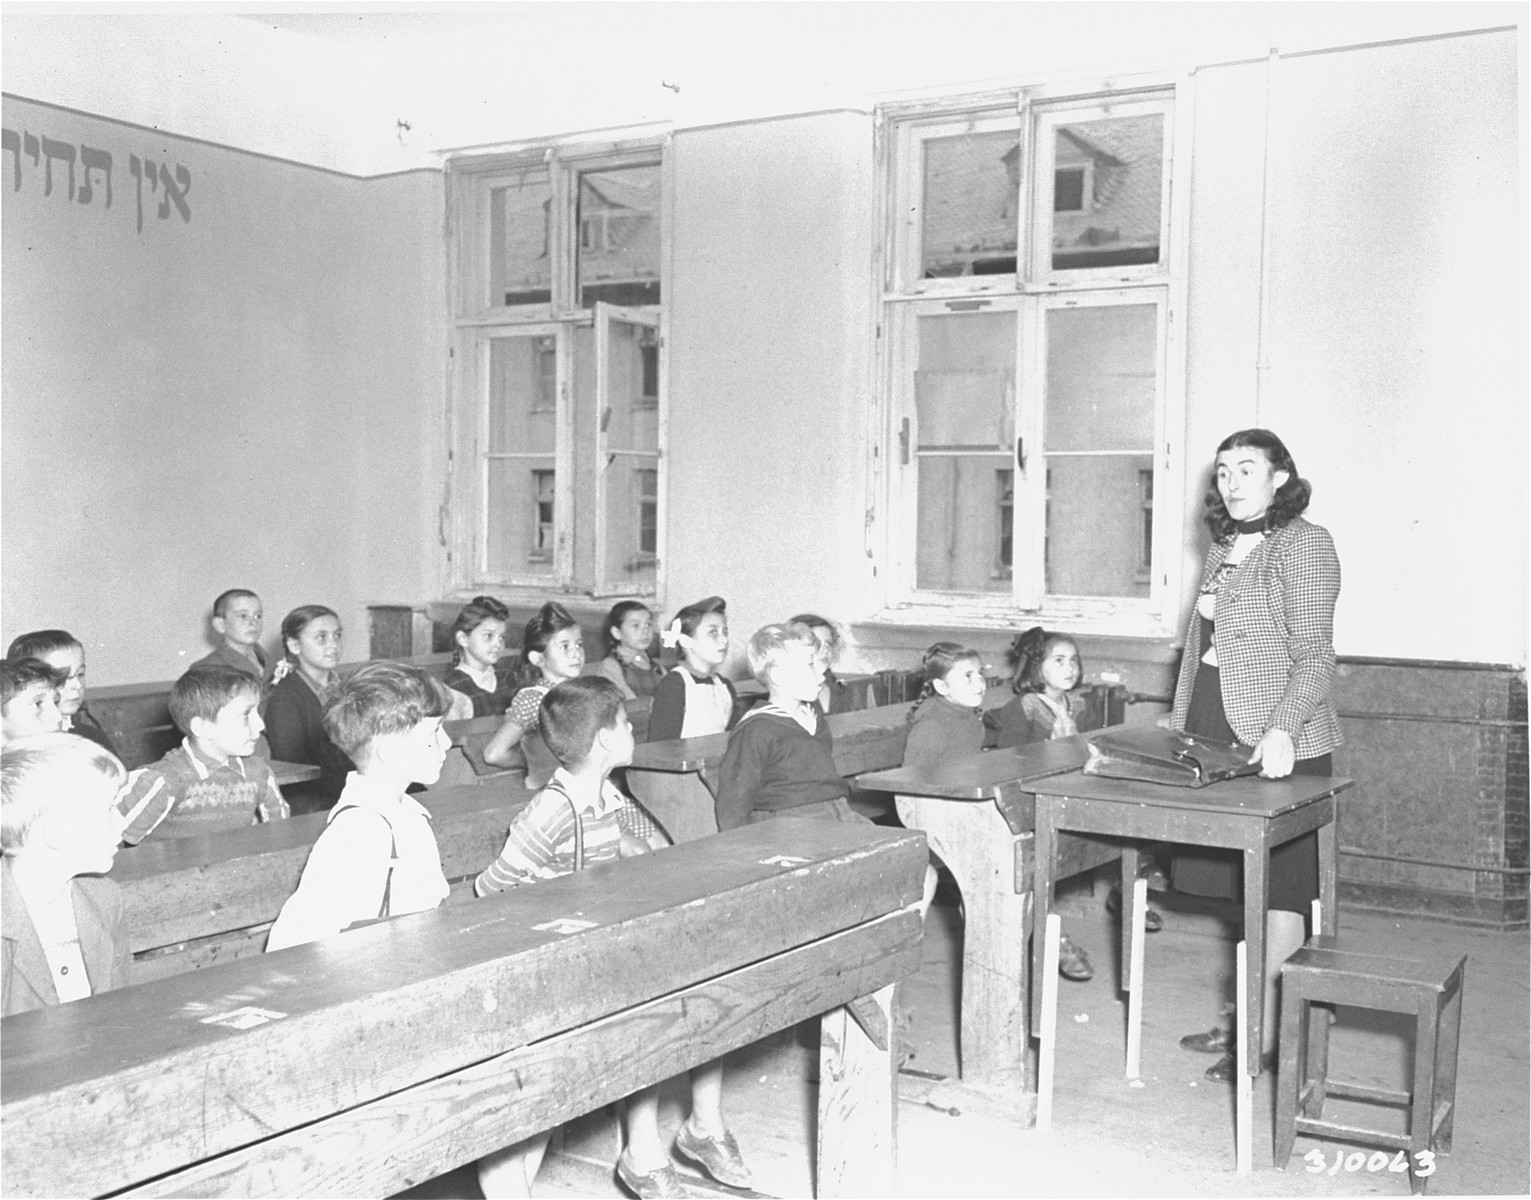 A classroom at the Jewish displaced persons camp in Wetzlar.